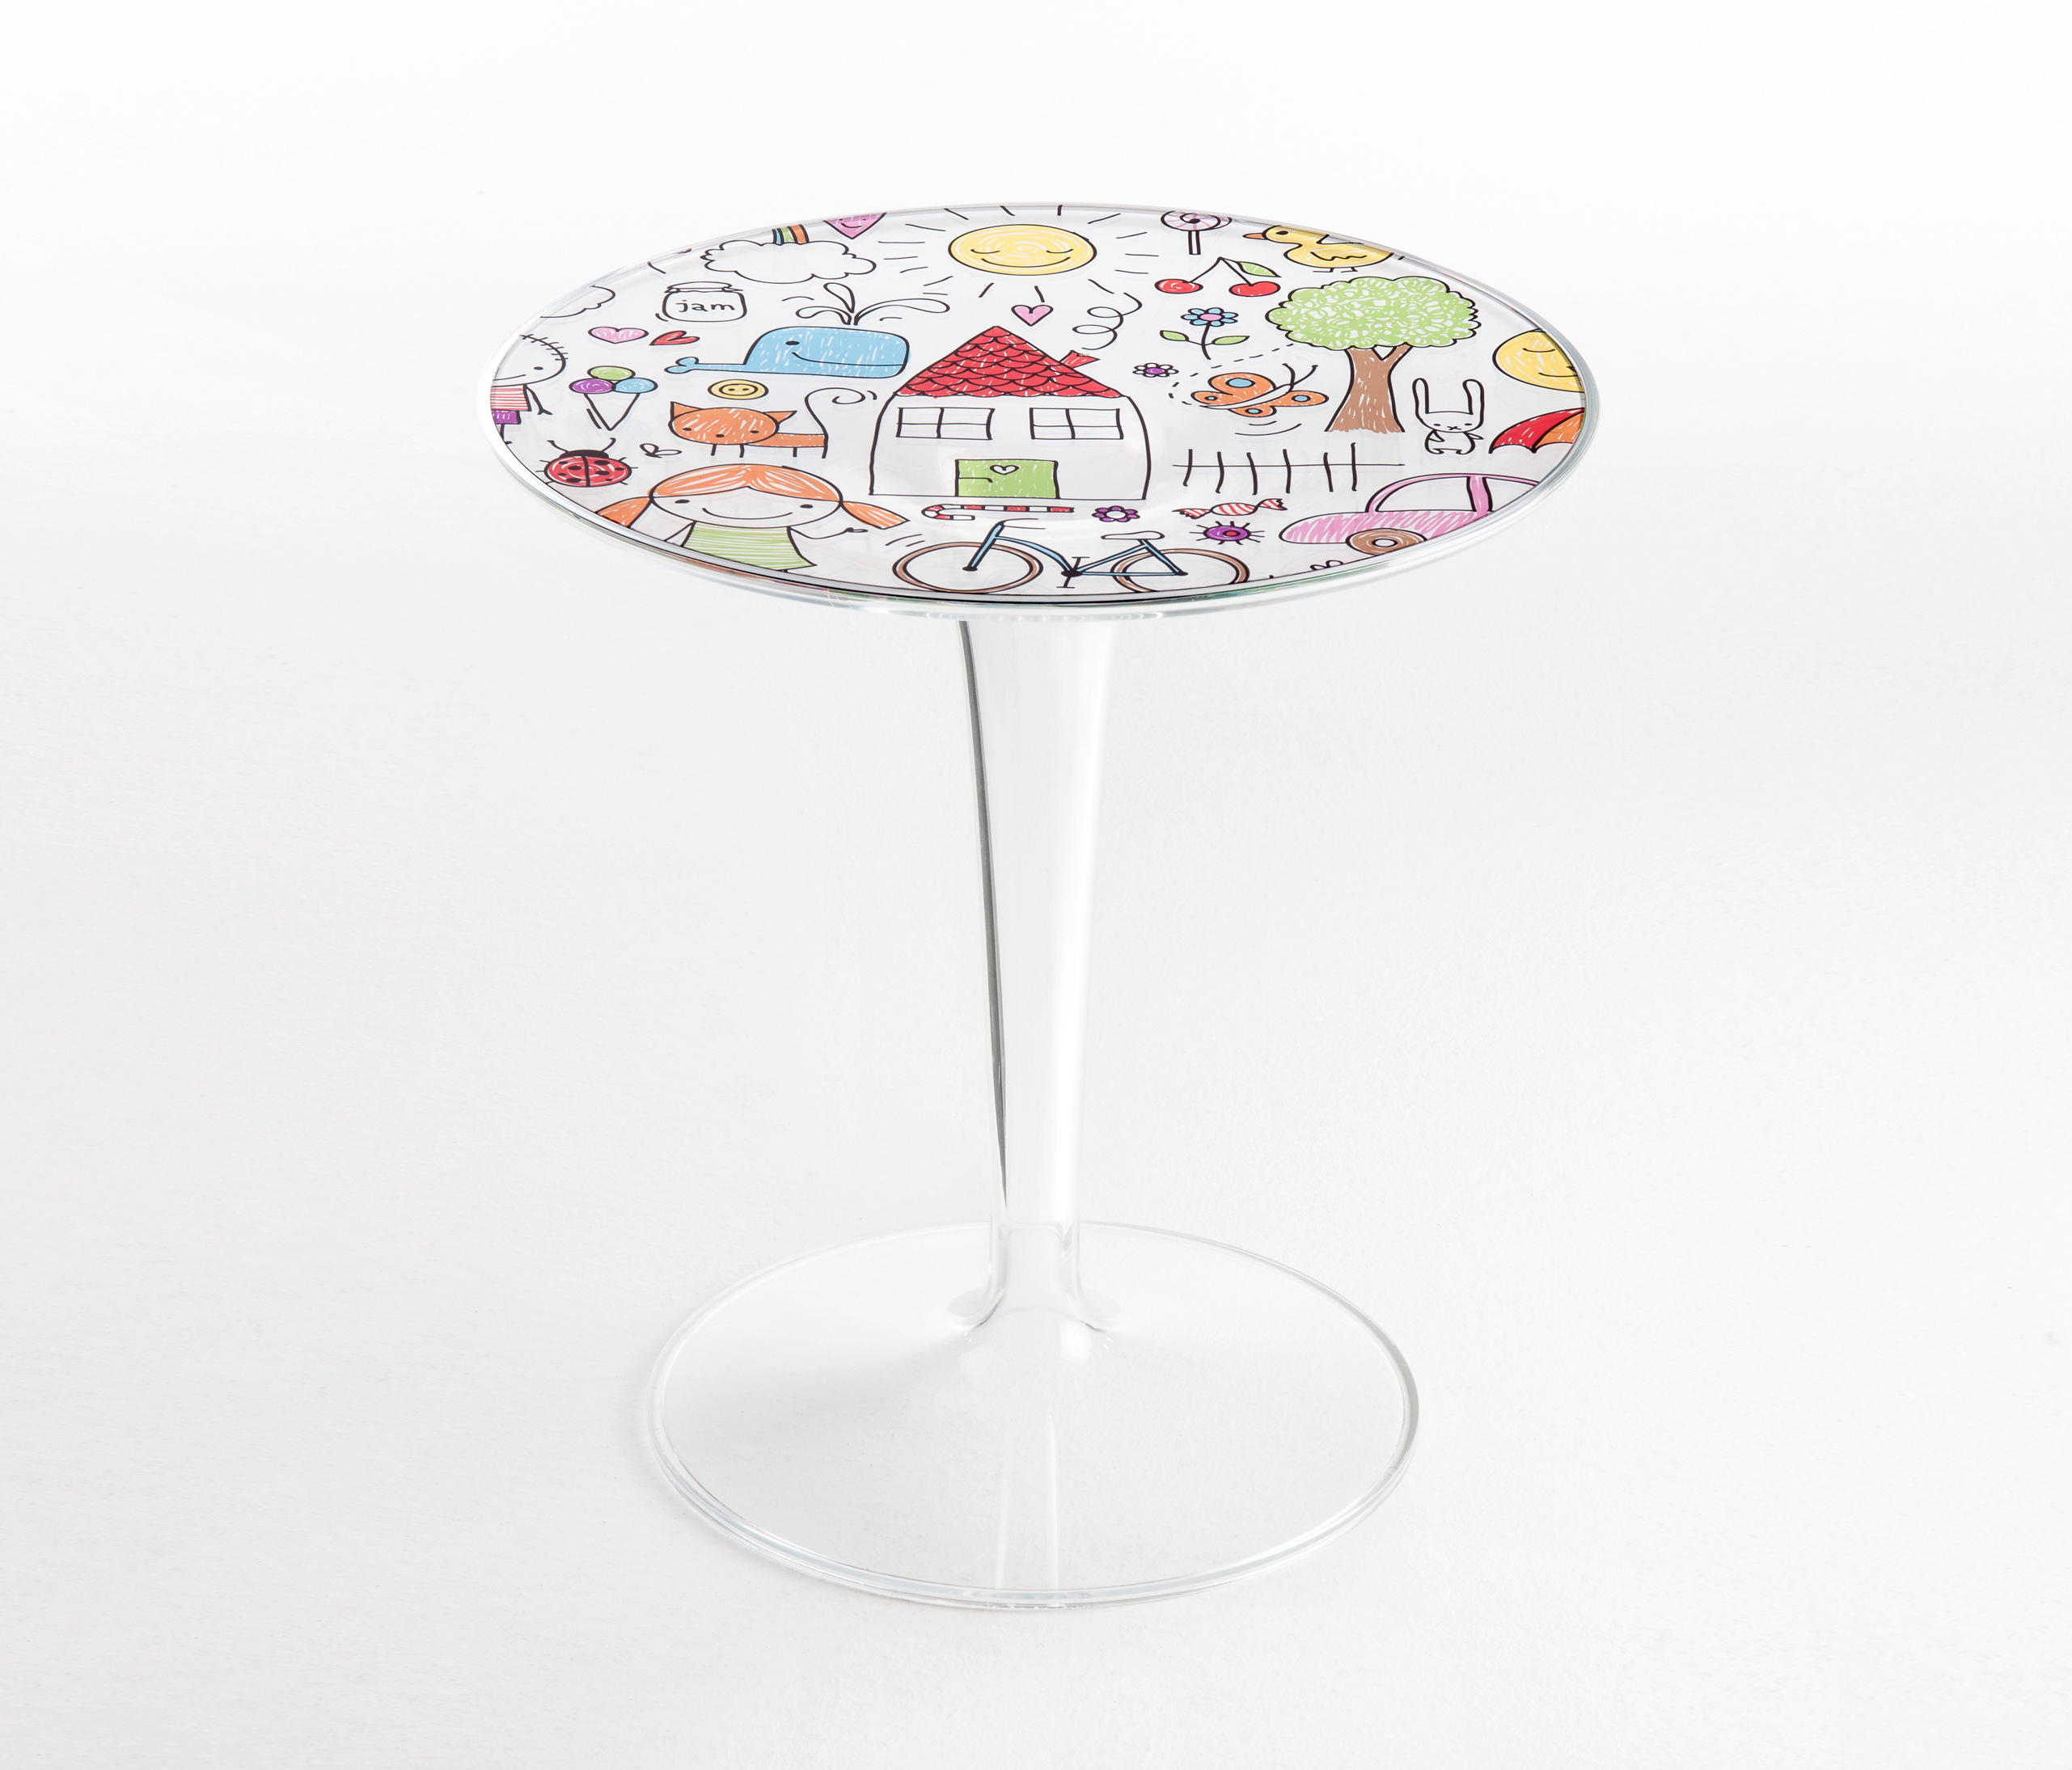 kids tables  high quality designer kids tables  architonic - tip top kids  children's area  kartell